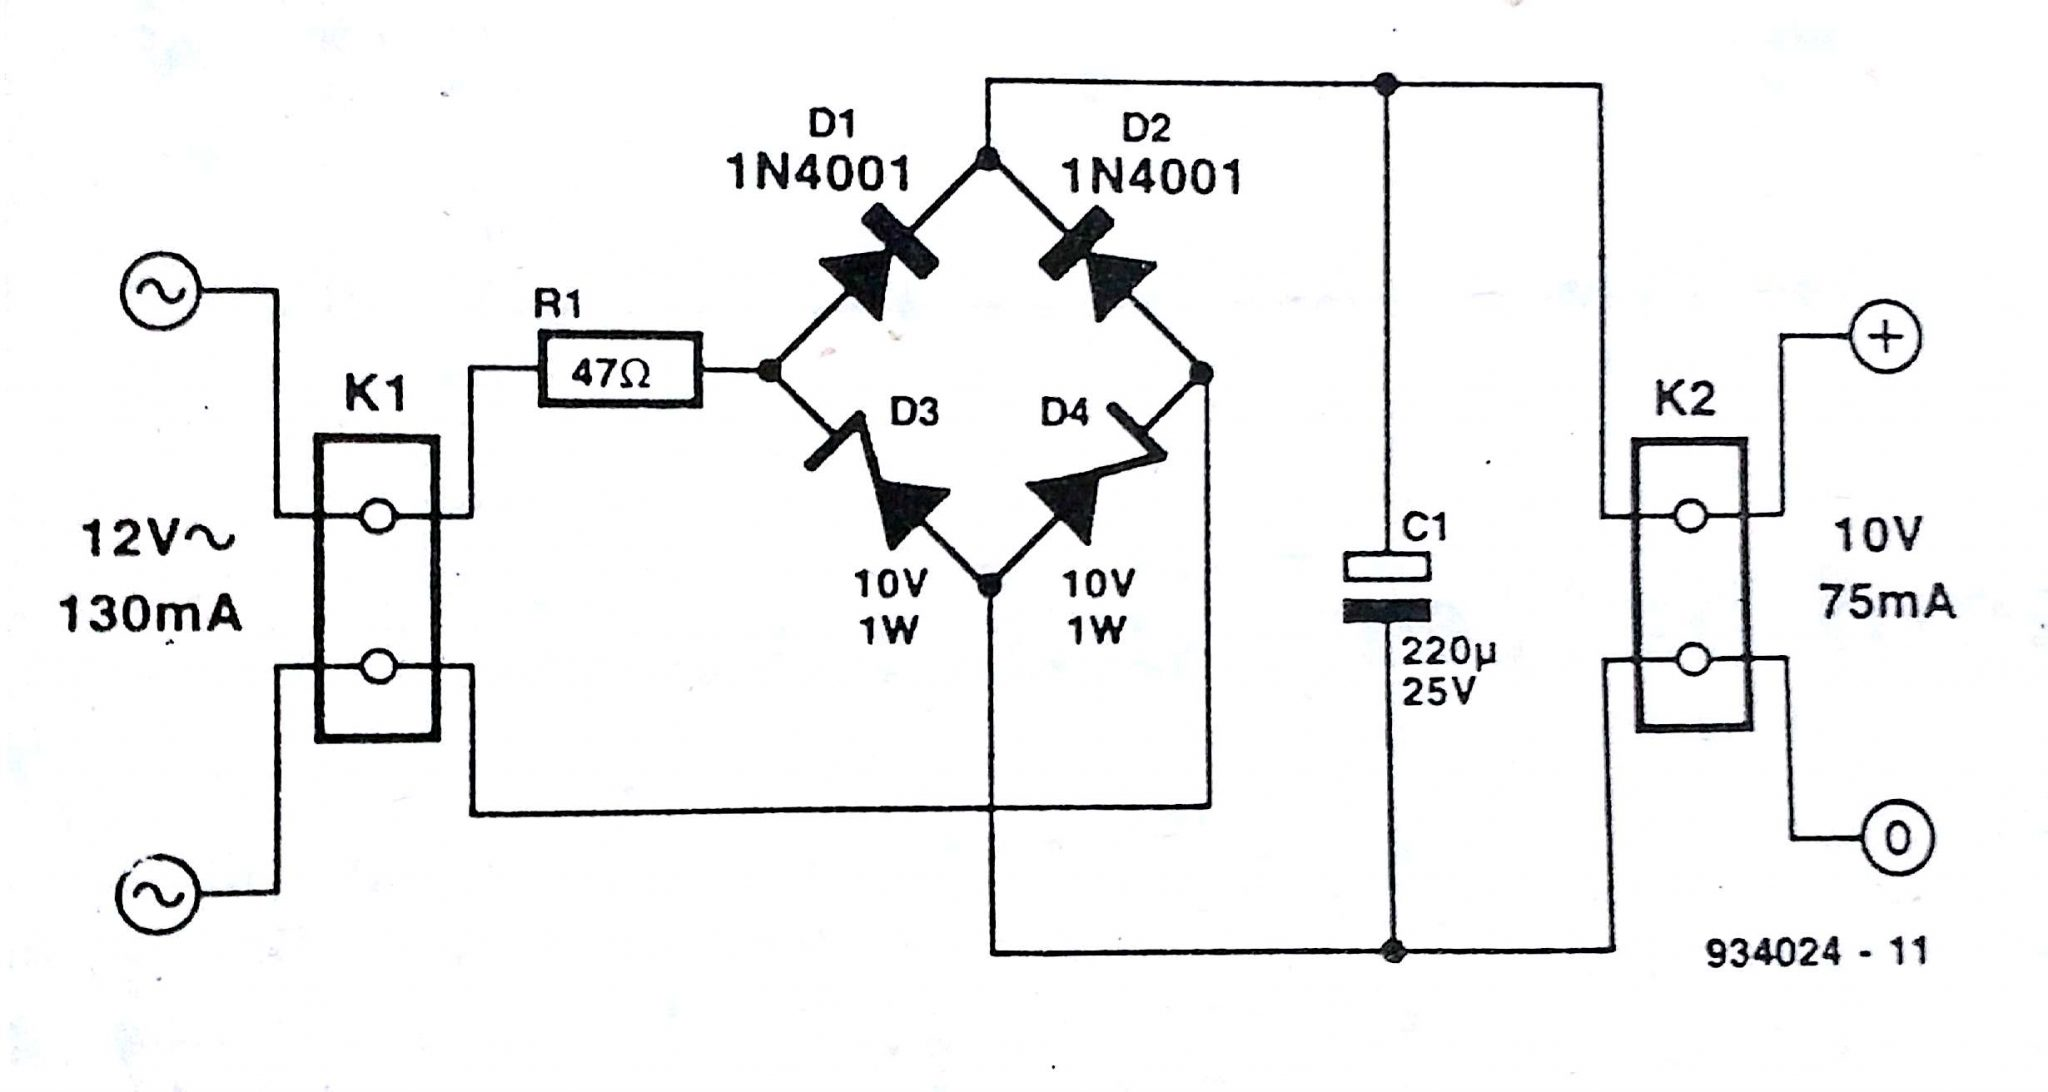 Wiring Diagram Theory Battery Diagrams Wiring Diagram